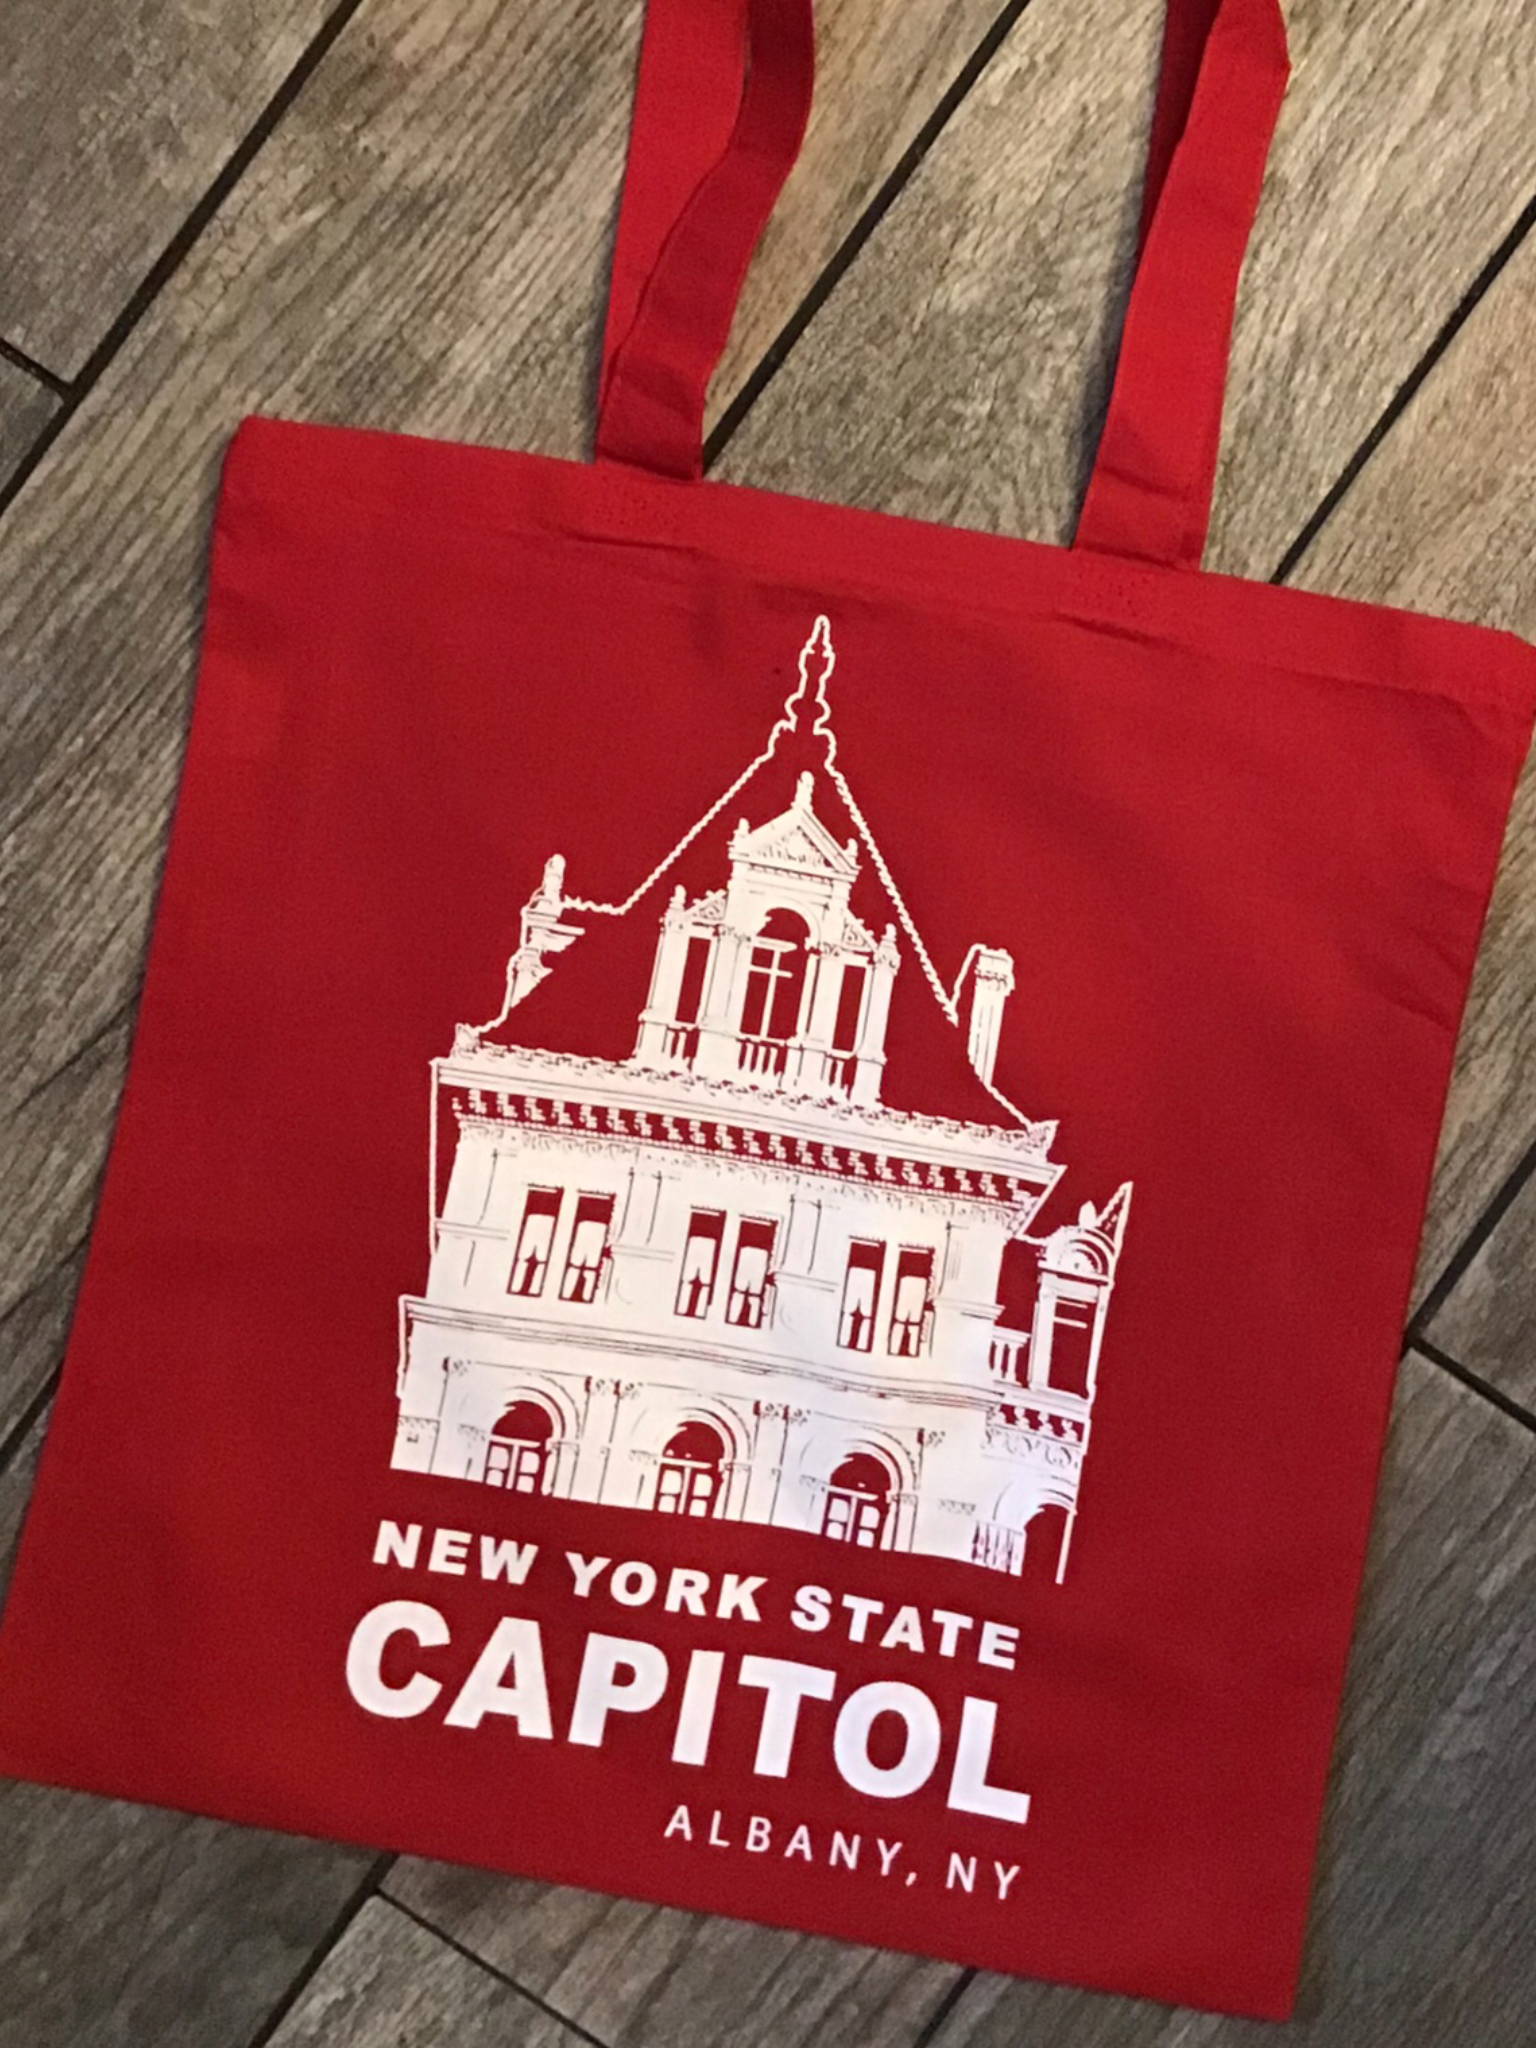 NYS CAPITOL TOWER - White Lineart on Red Tote Bag